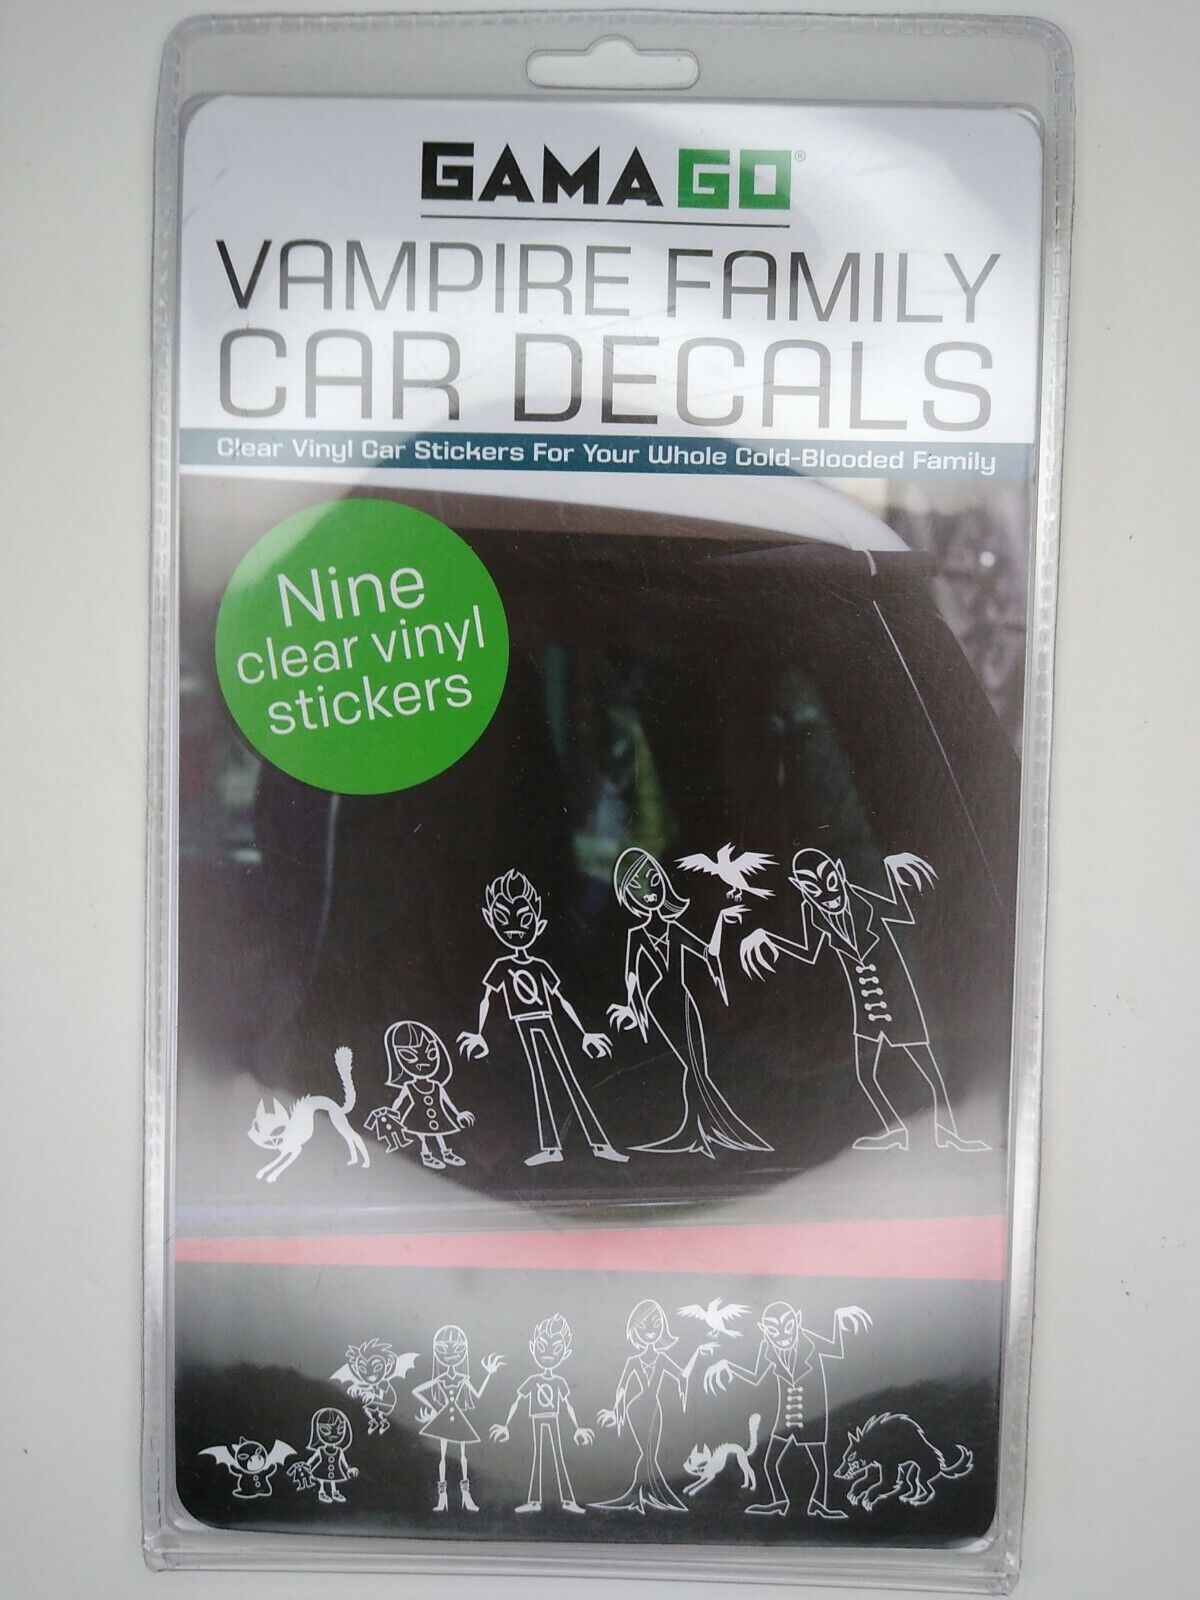 What Kind Of Vinyl For Car Decals : vinyl, decals, Vampire, Family, Clear, Vinyl, Window, Decals, GAMAGO, Online